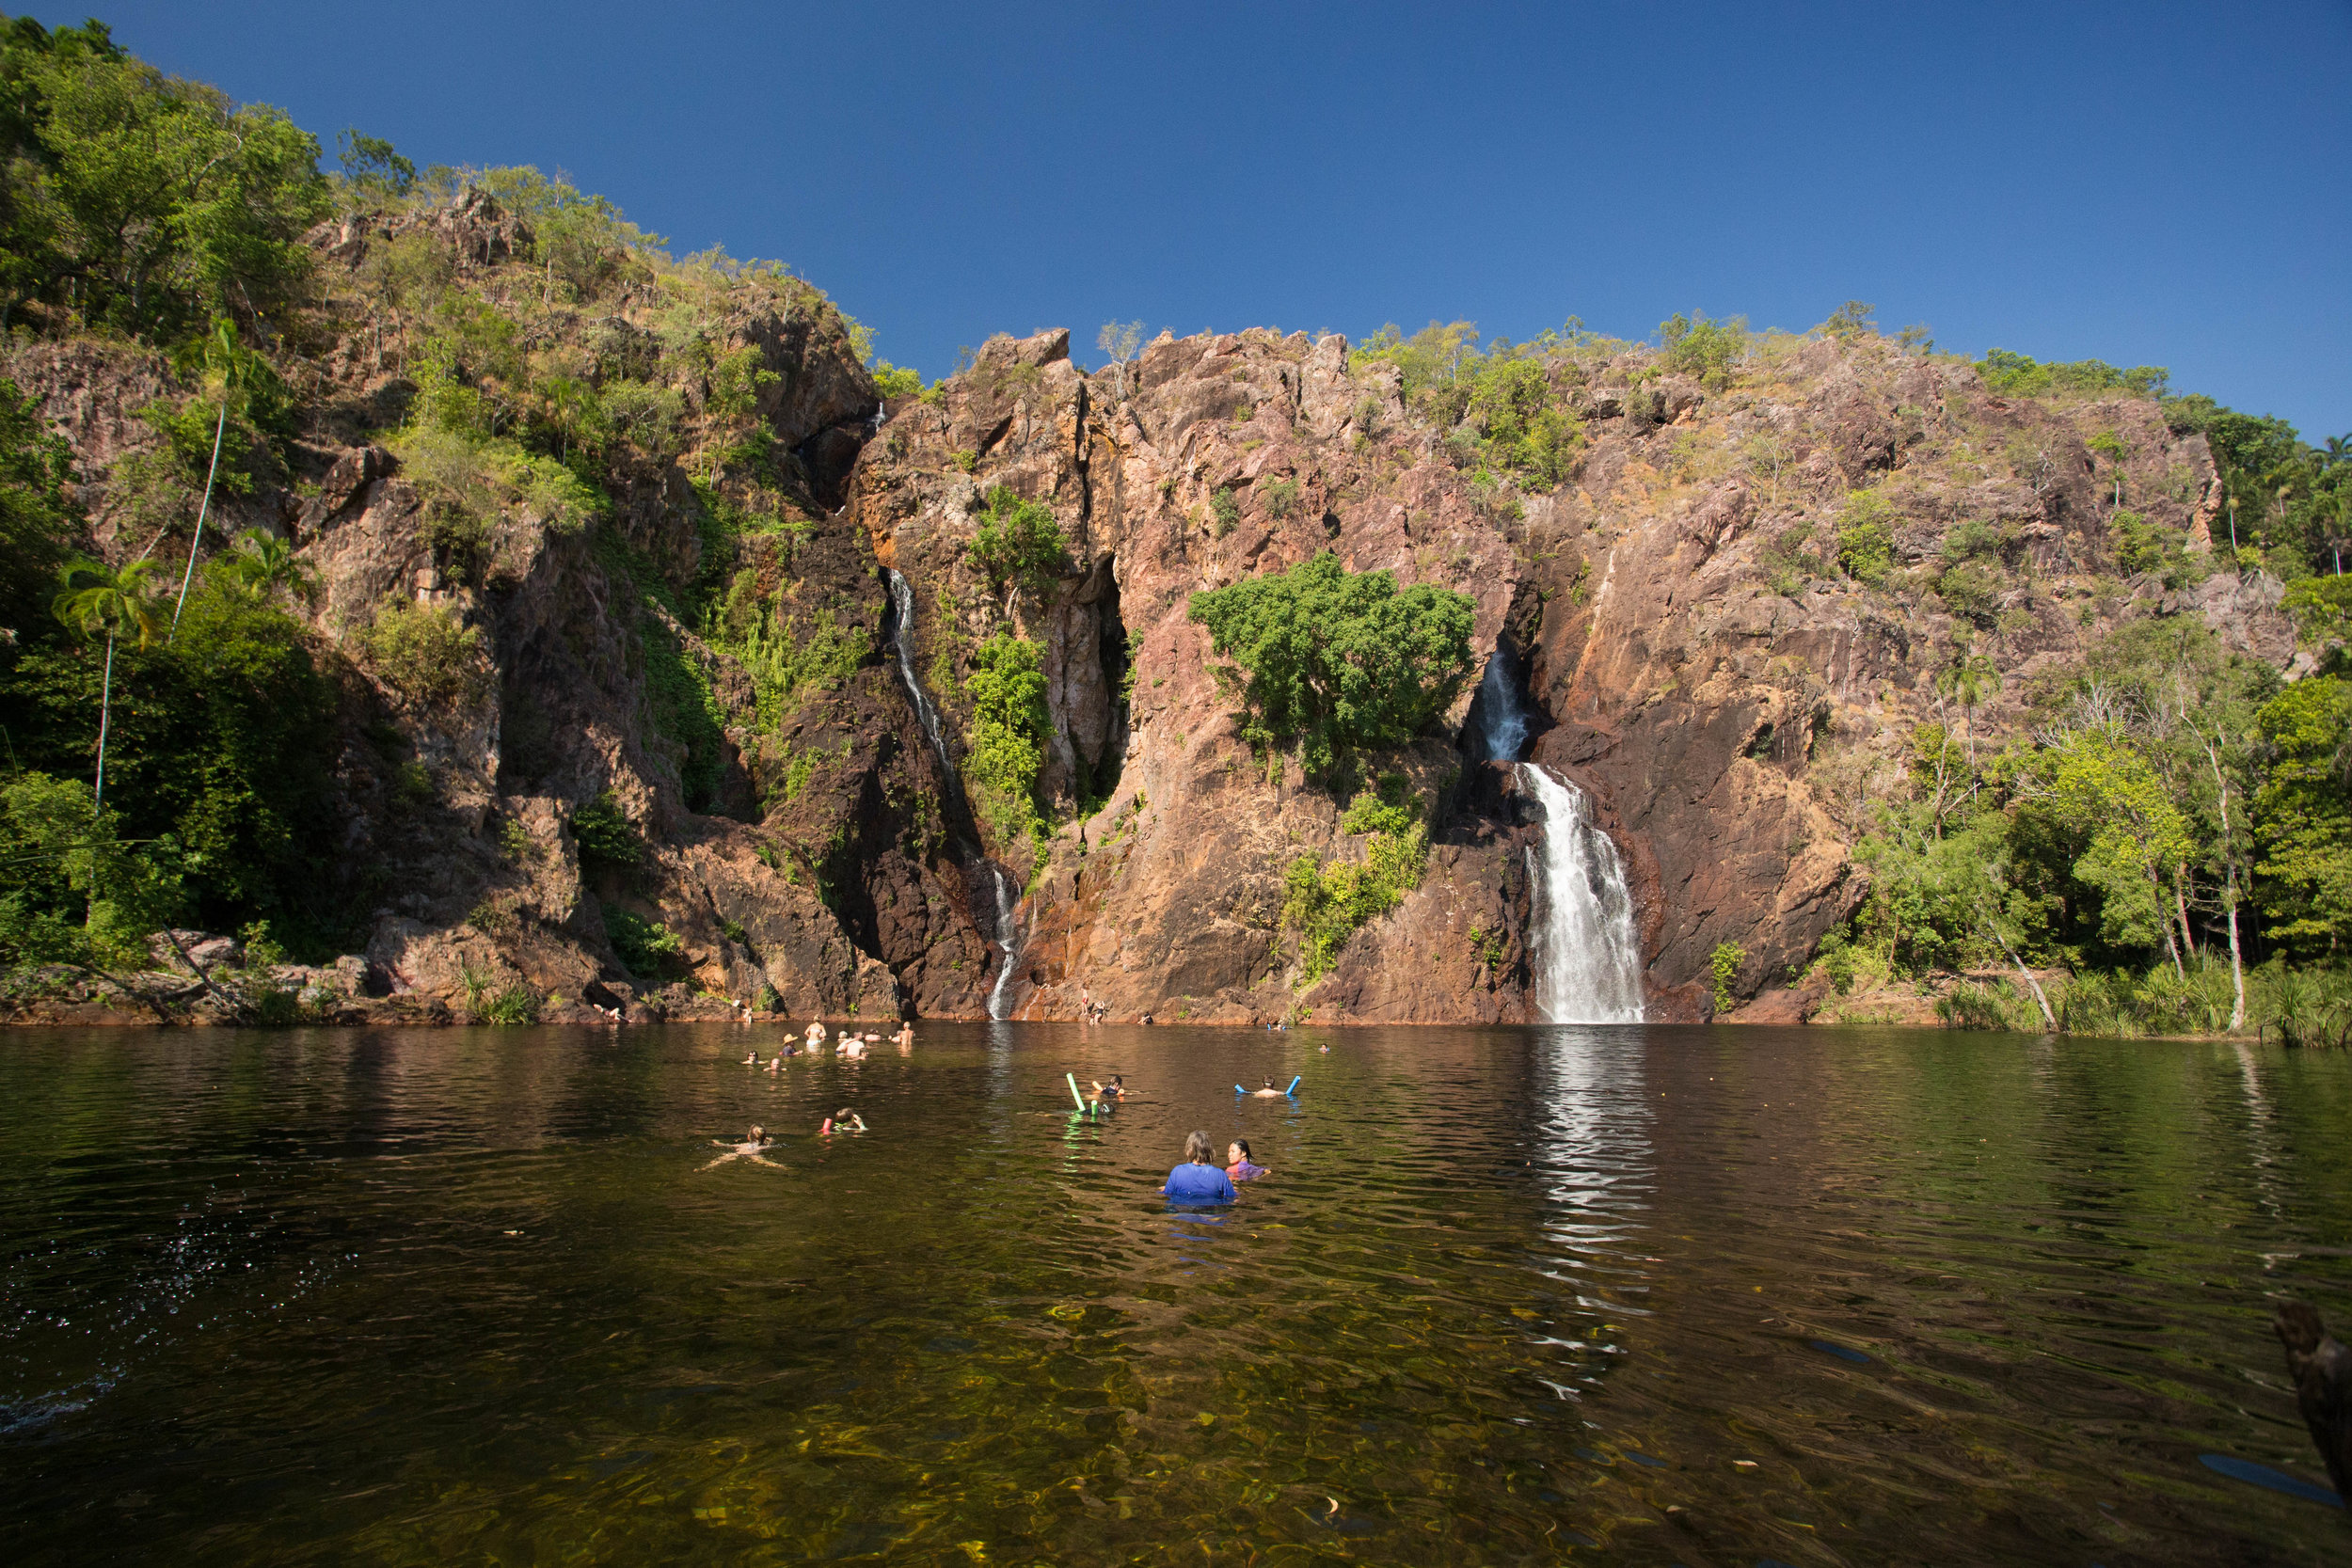 Wangi Falls from the footsteps into the water.